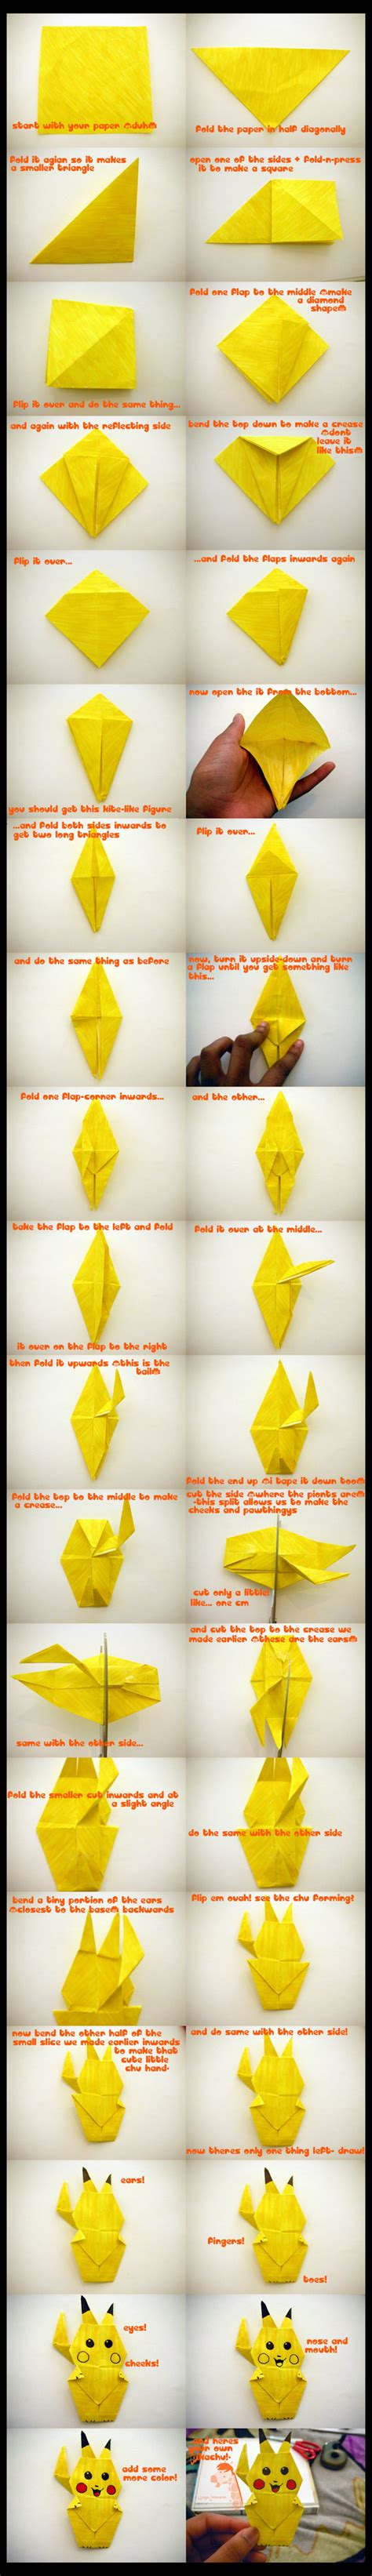 how to make an origami pikachu step by step how to make an origami pikachu visual ly